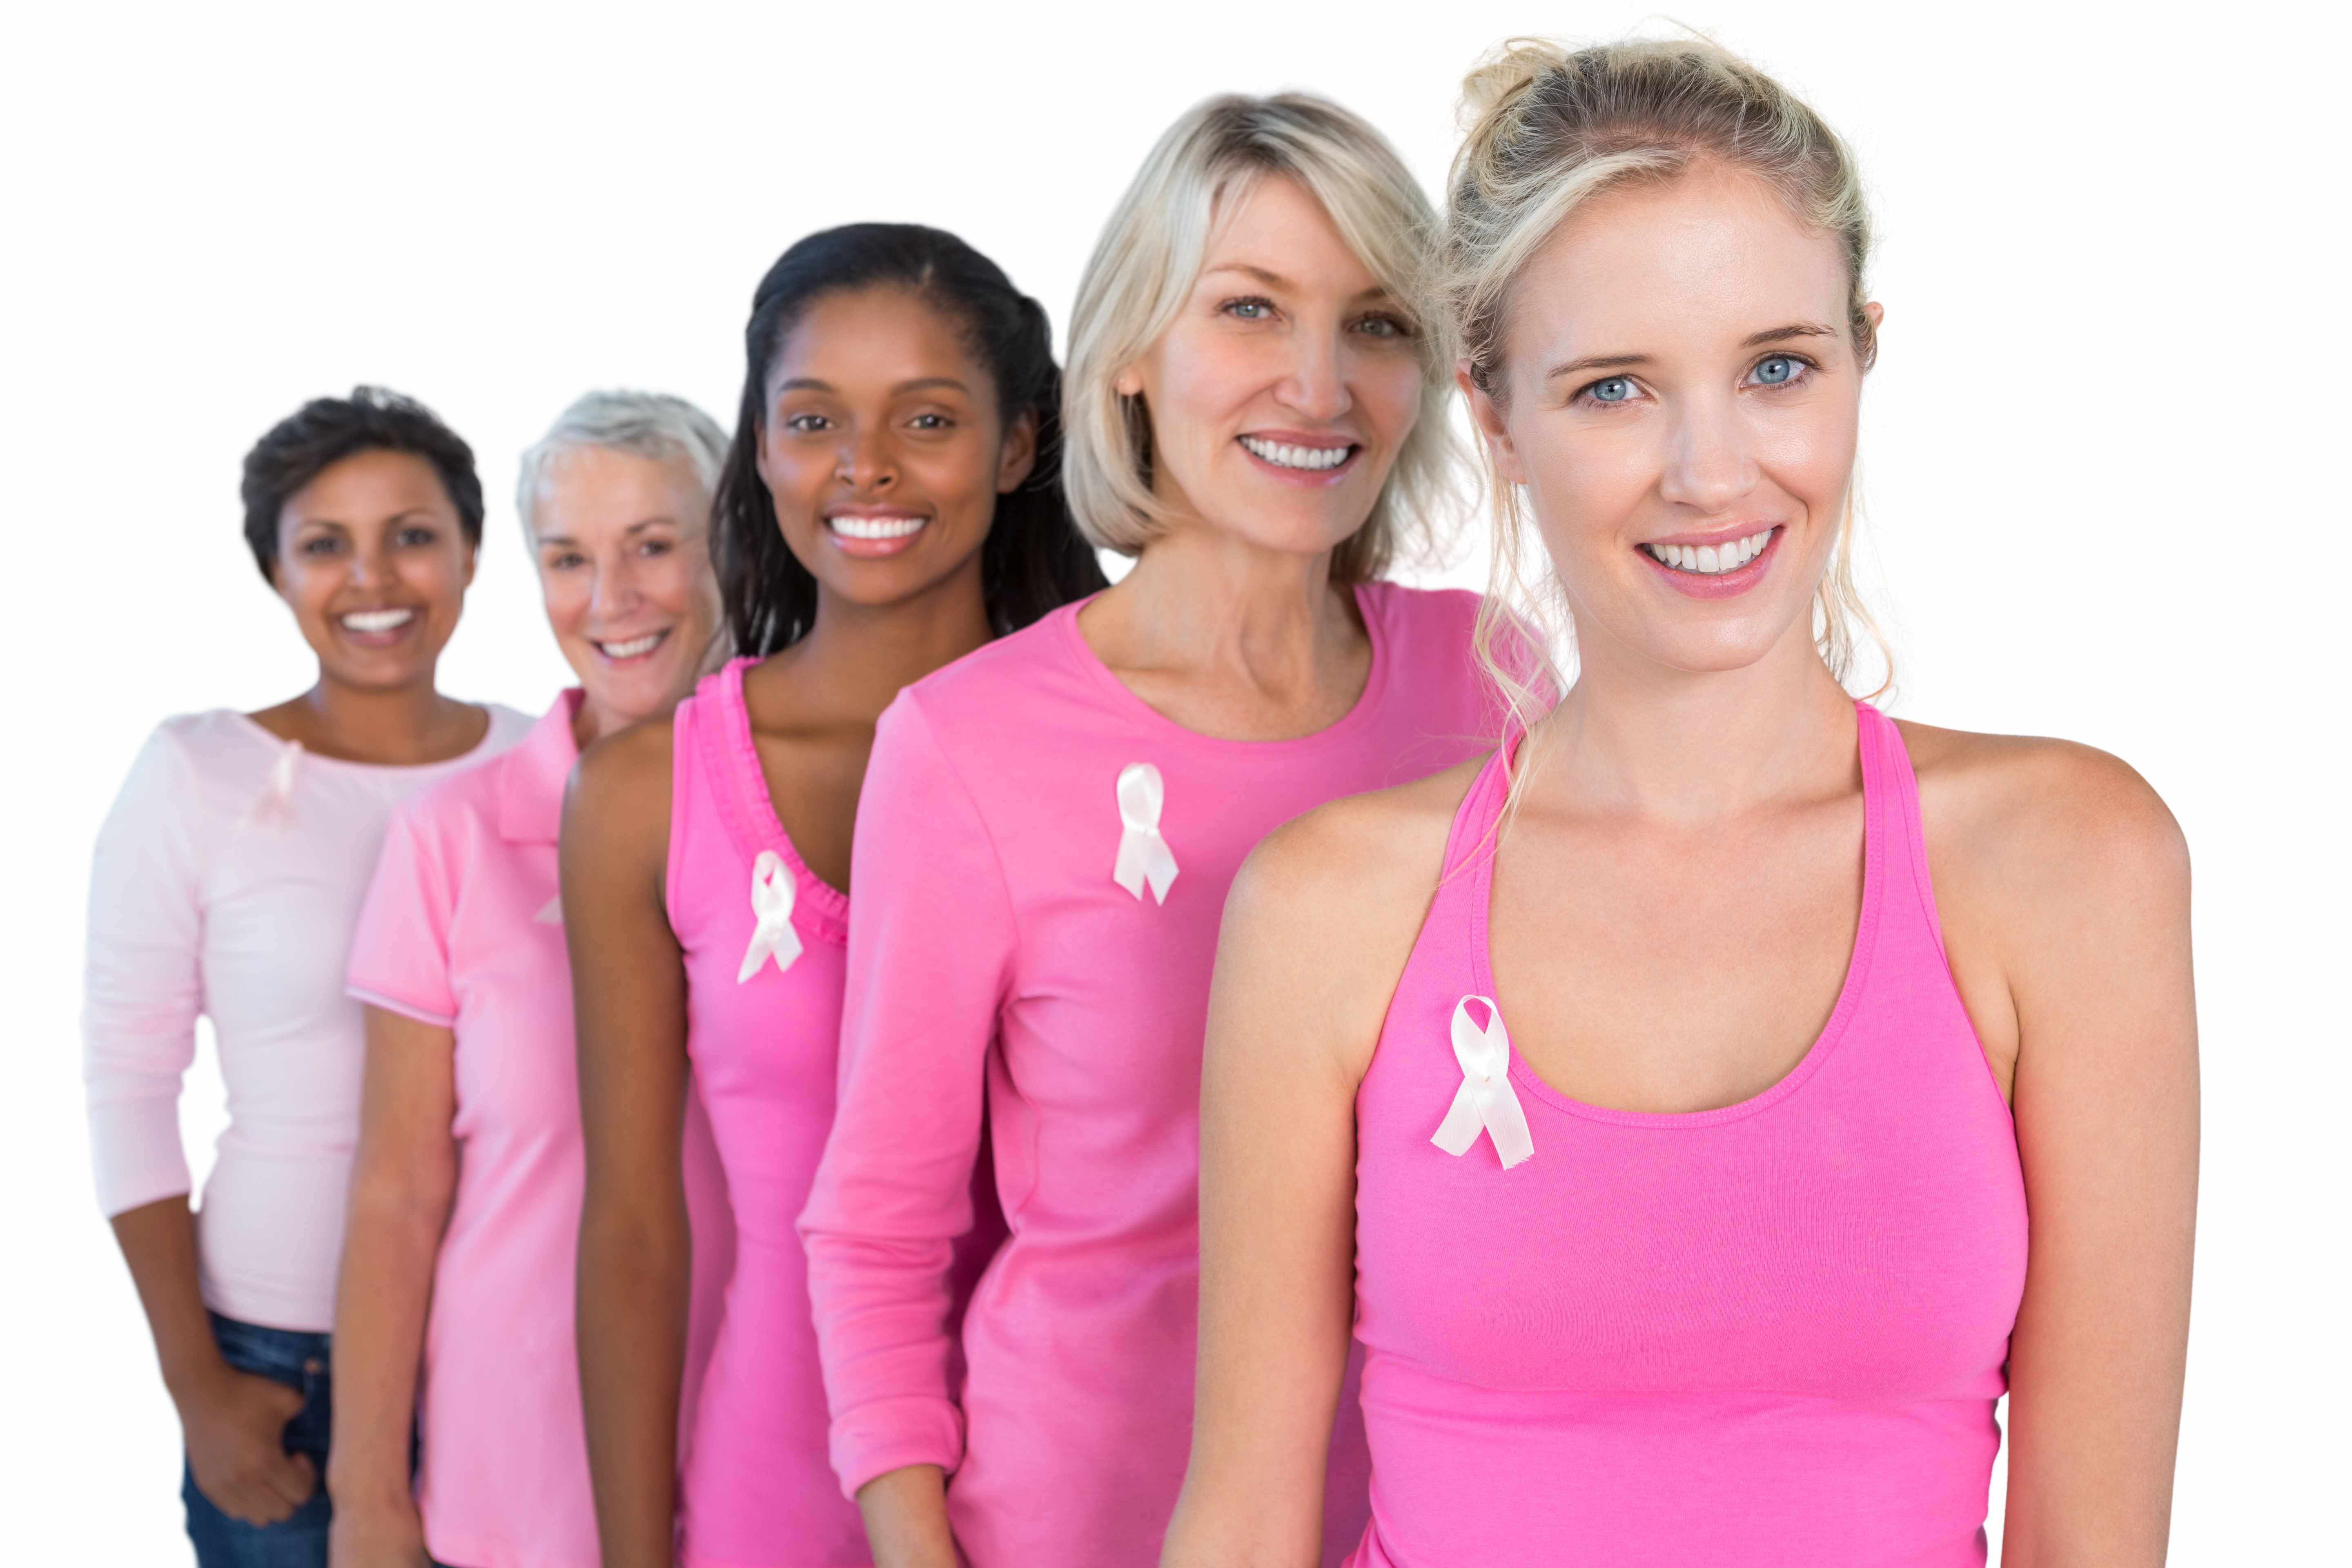 women dressed in pink shirts for breast cancer awareness